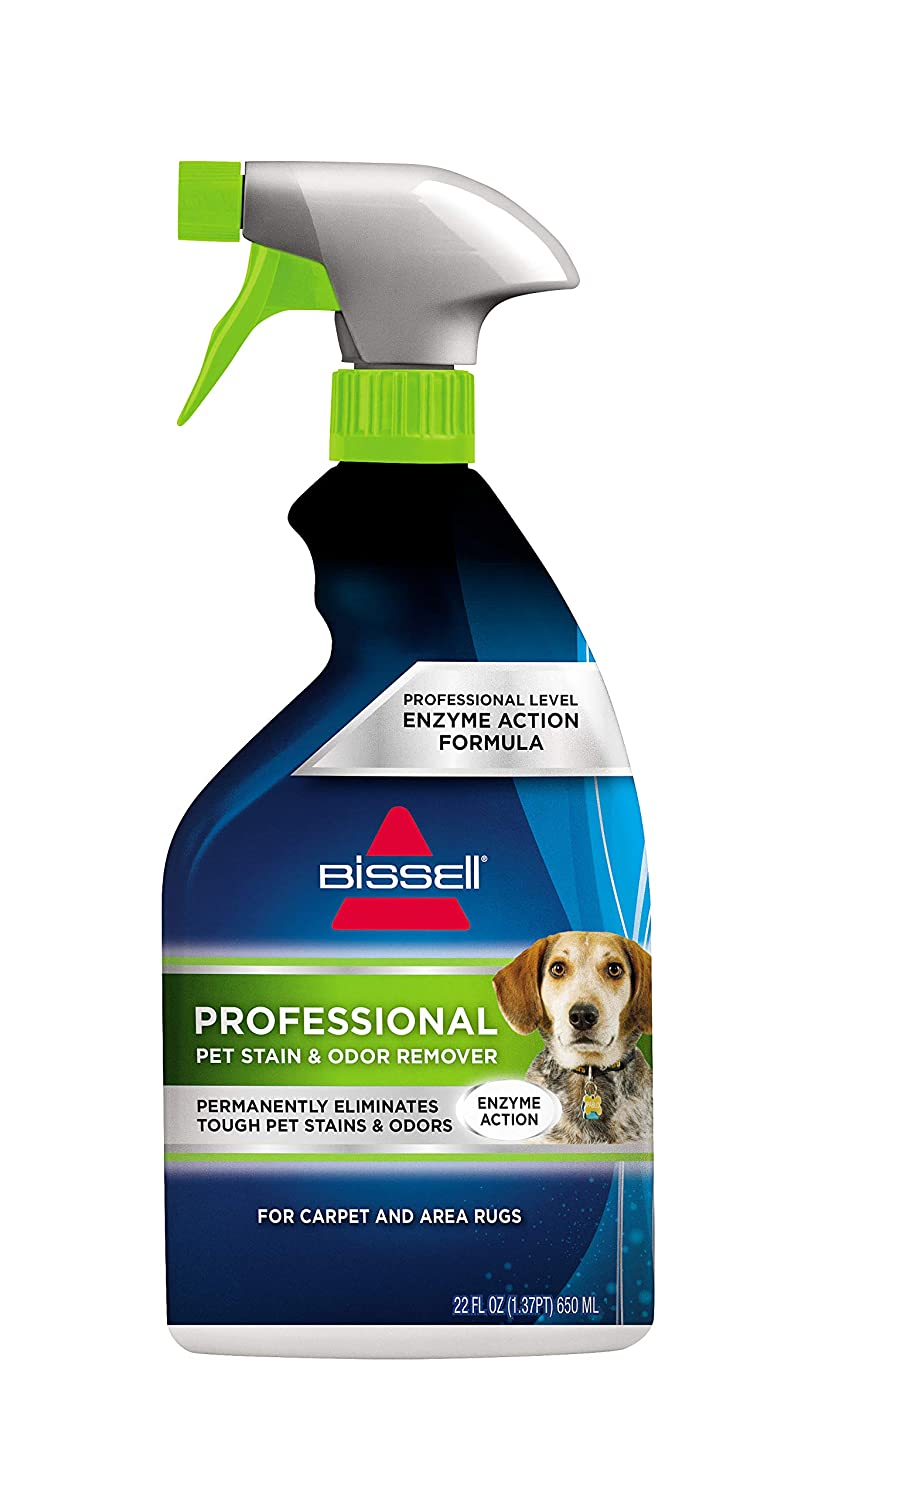 Bissell Professional Stain & Odor, 22 Ounces, 77X7